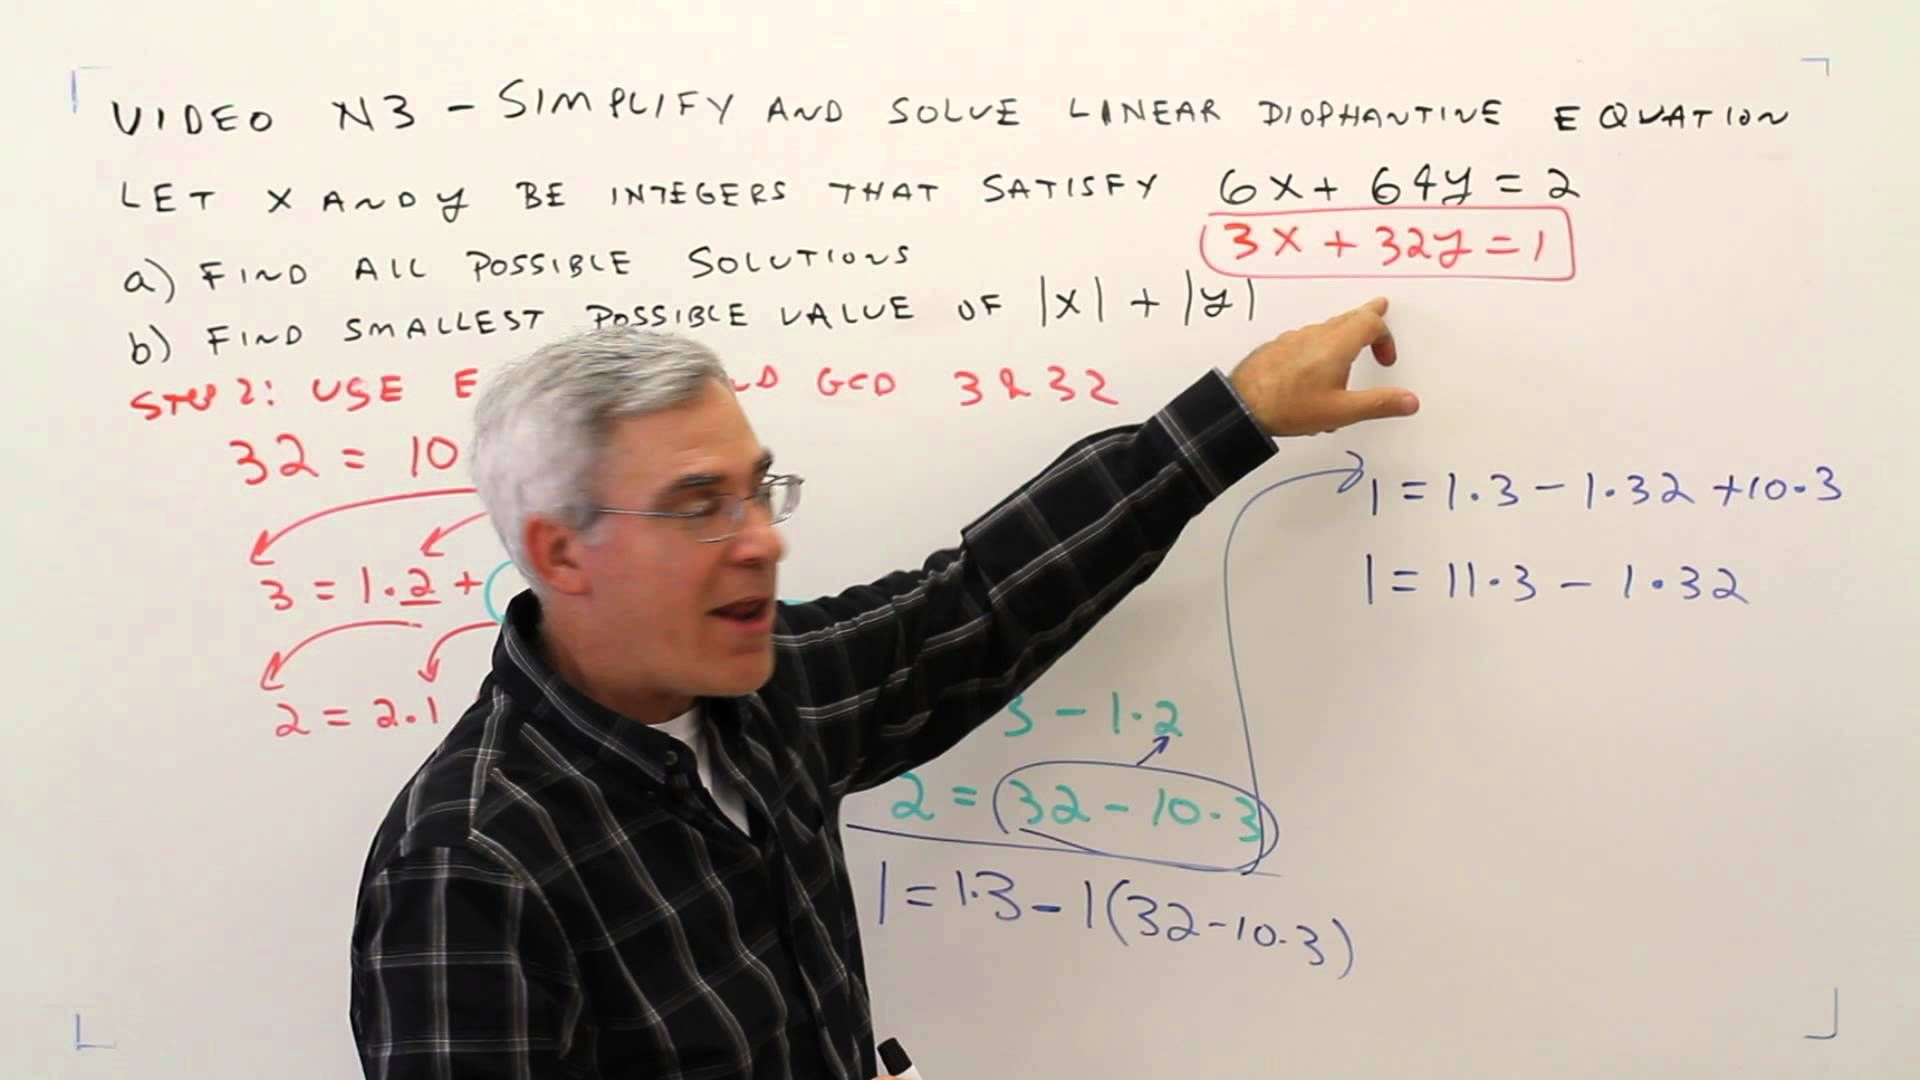 N3 Simplify And Solve Linear Diophantine Equation